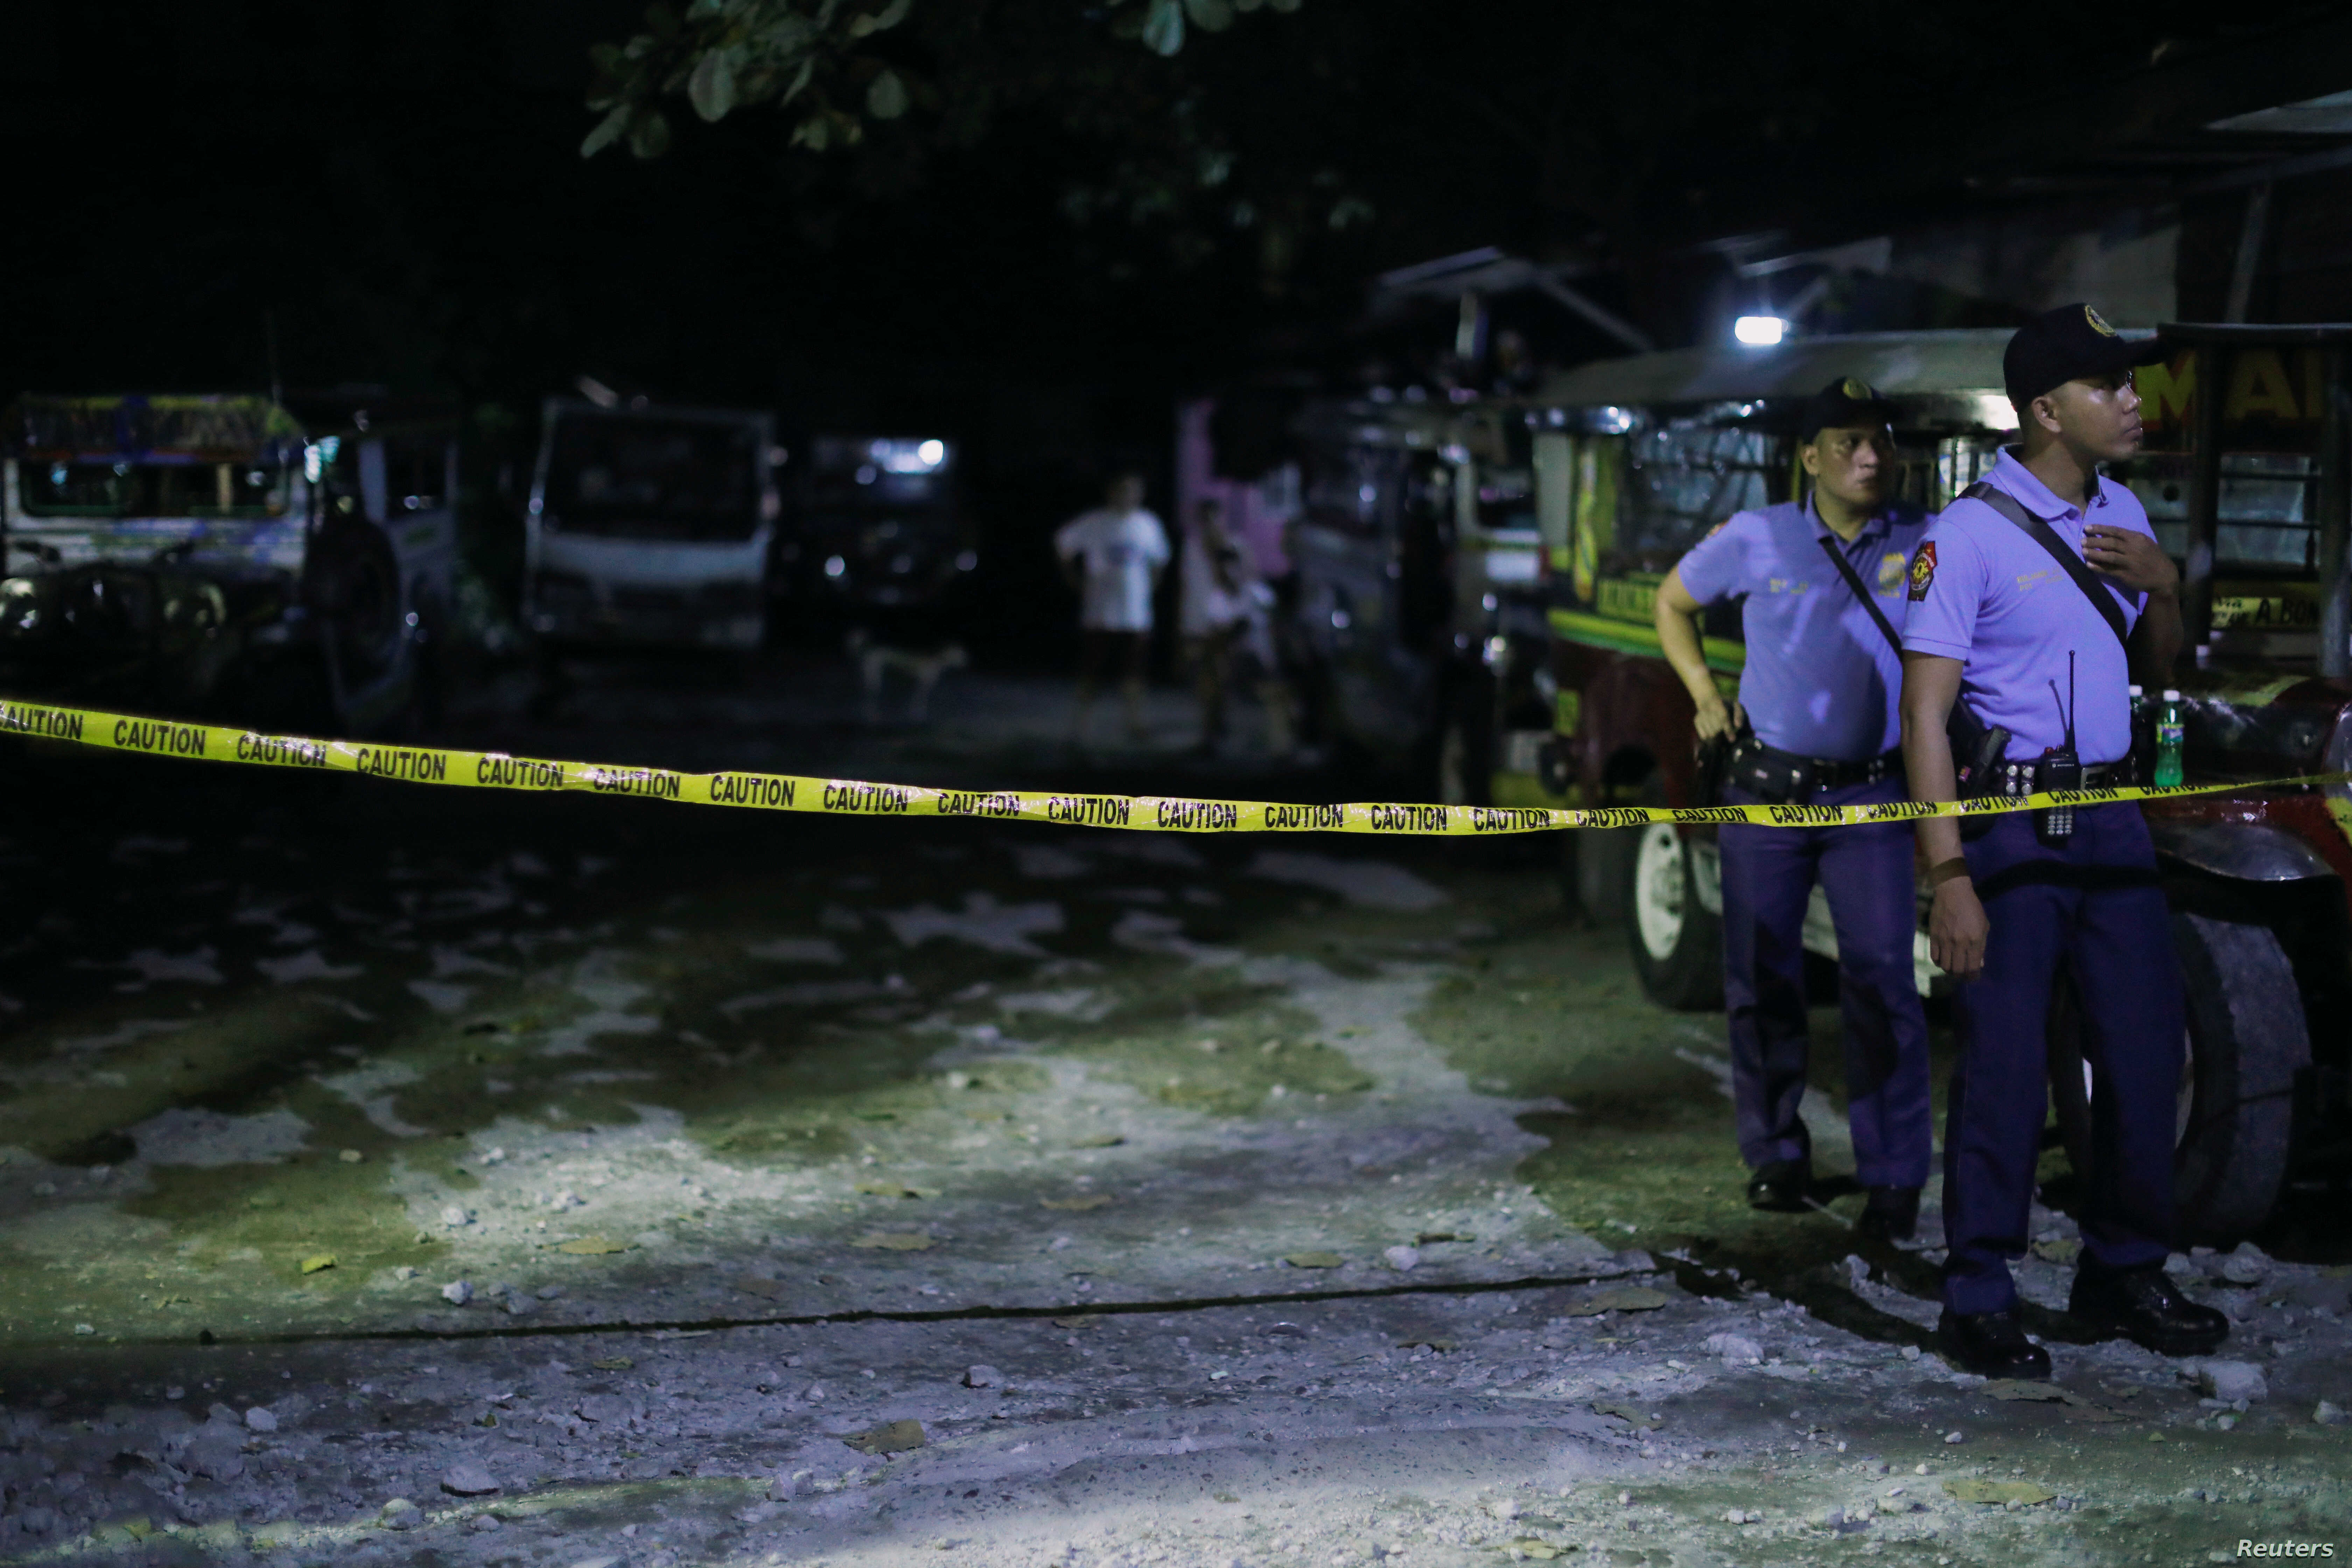 Police officers stand behind a police line after a man was killed during a police anti-drug operation in Caloocan city, Metro Manila, Philippines, Aug. 17, 2017.